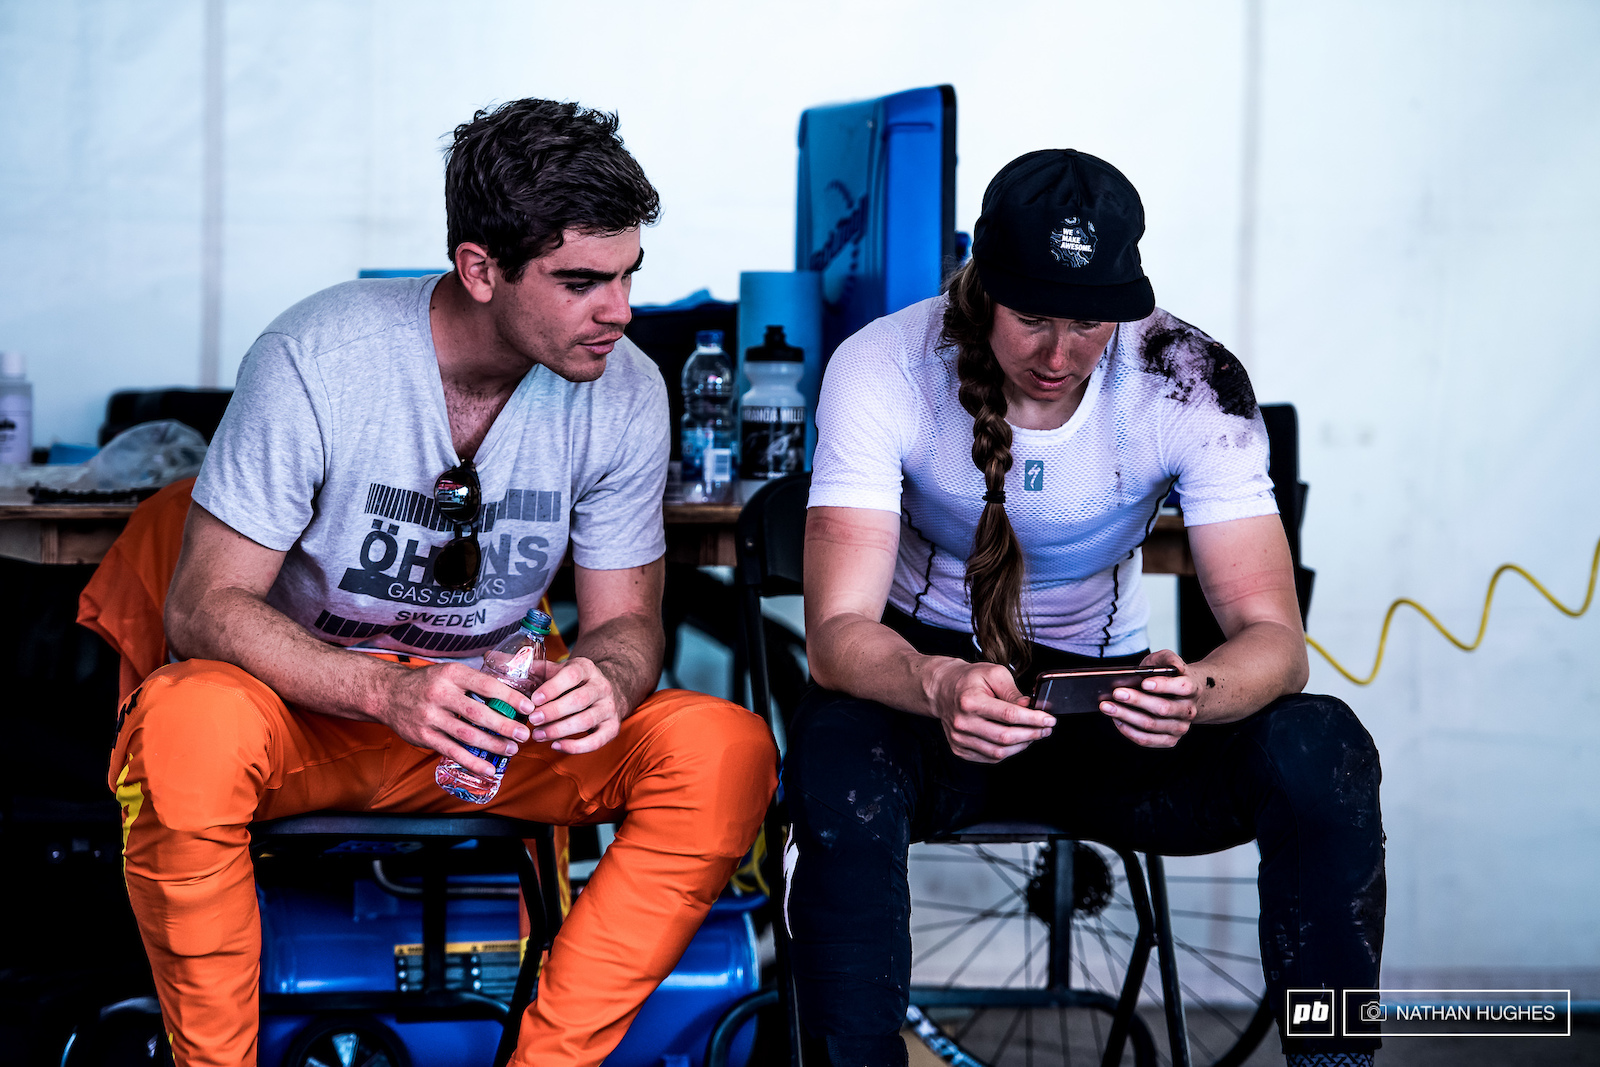 Loic and Miranda check some clips after a spill for the Canadian champ during the morning session.